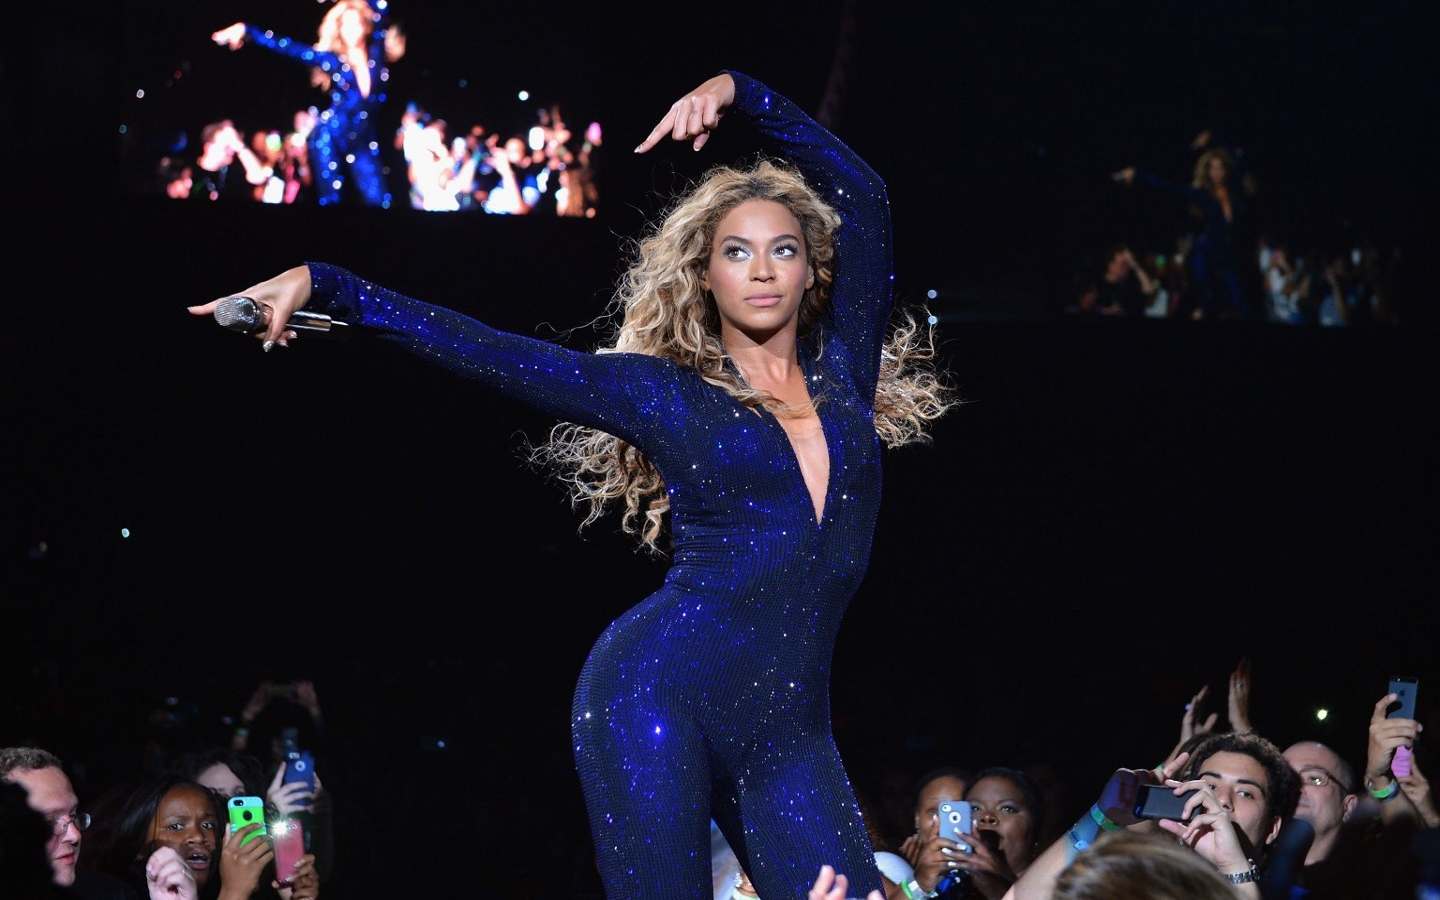 Beyonce images beyonce performing hd wallpaper and for 1234 get on the dance floor hd video download